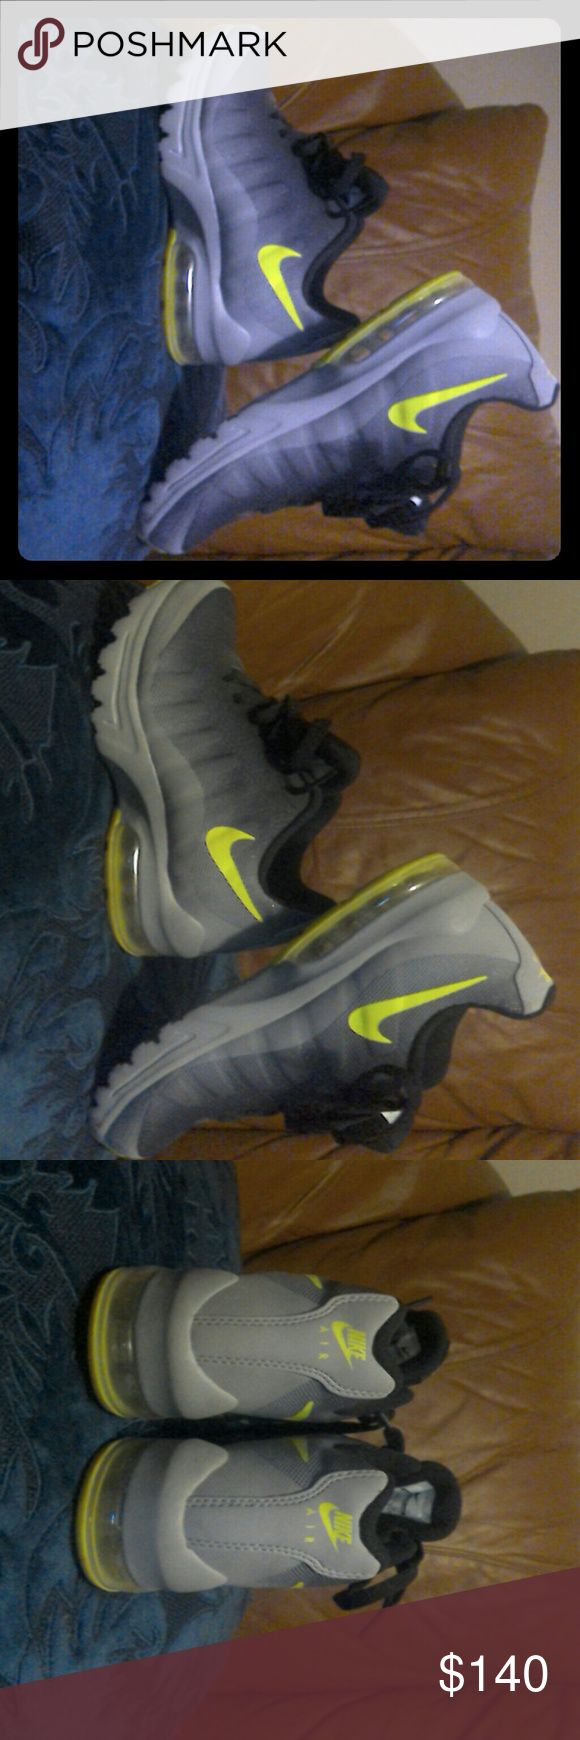 Only wore once. N everything i have has girly colo Air max 360 nike Shoes Sneakers